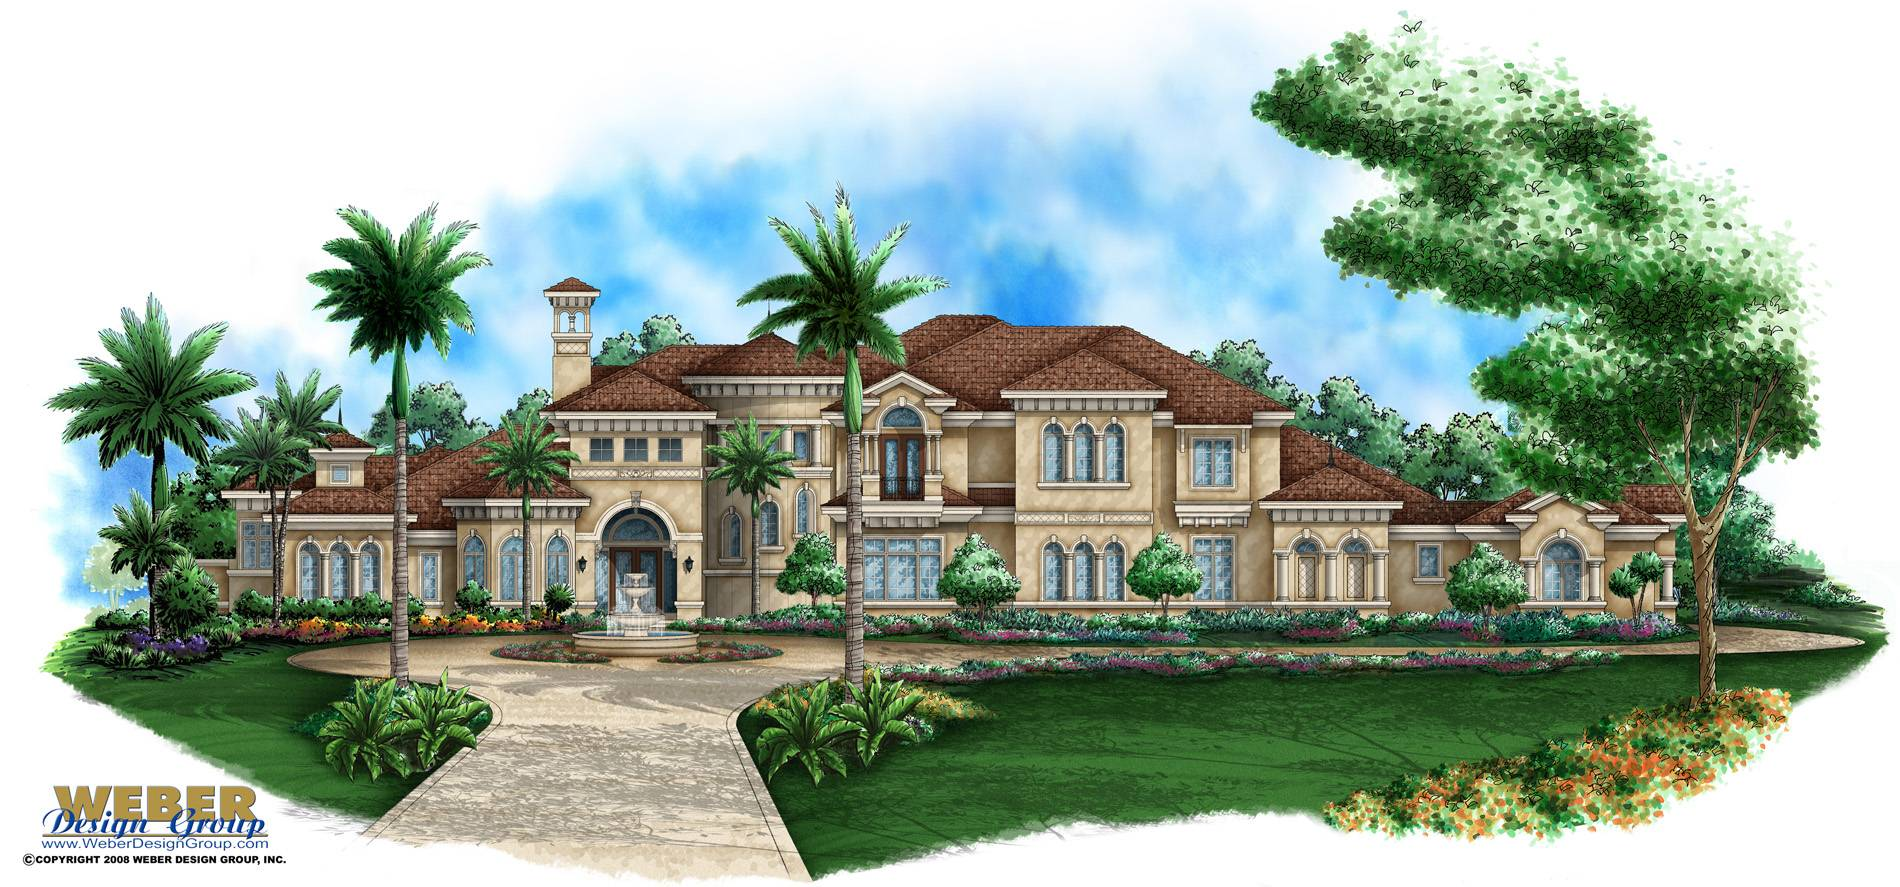 18 Best Photo Of The Sims 3 Mansion Ideas - House Plans